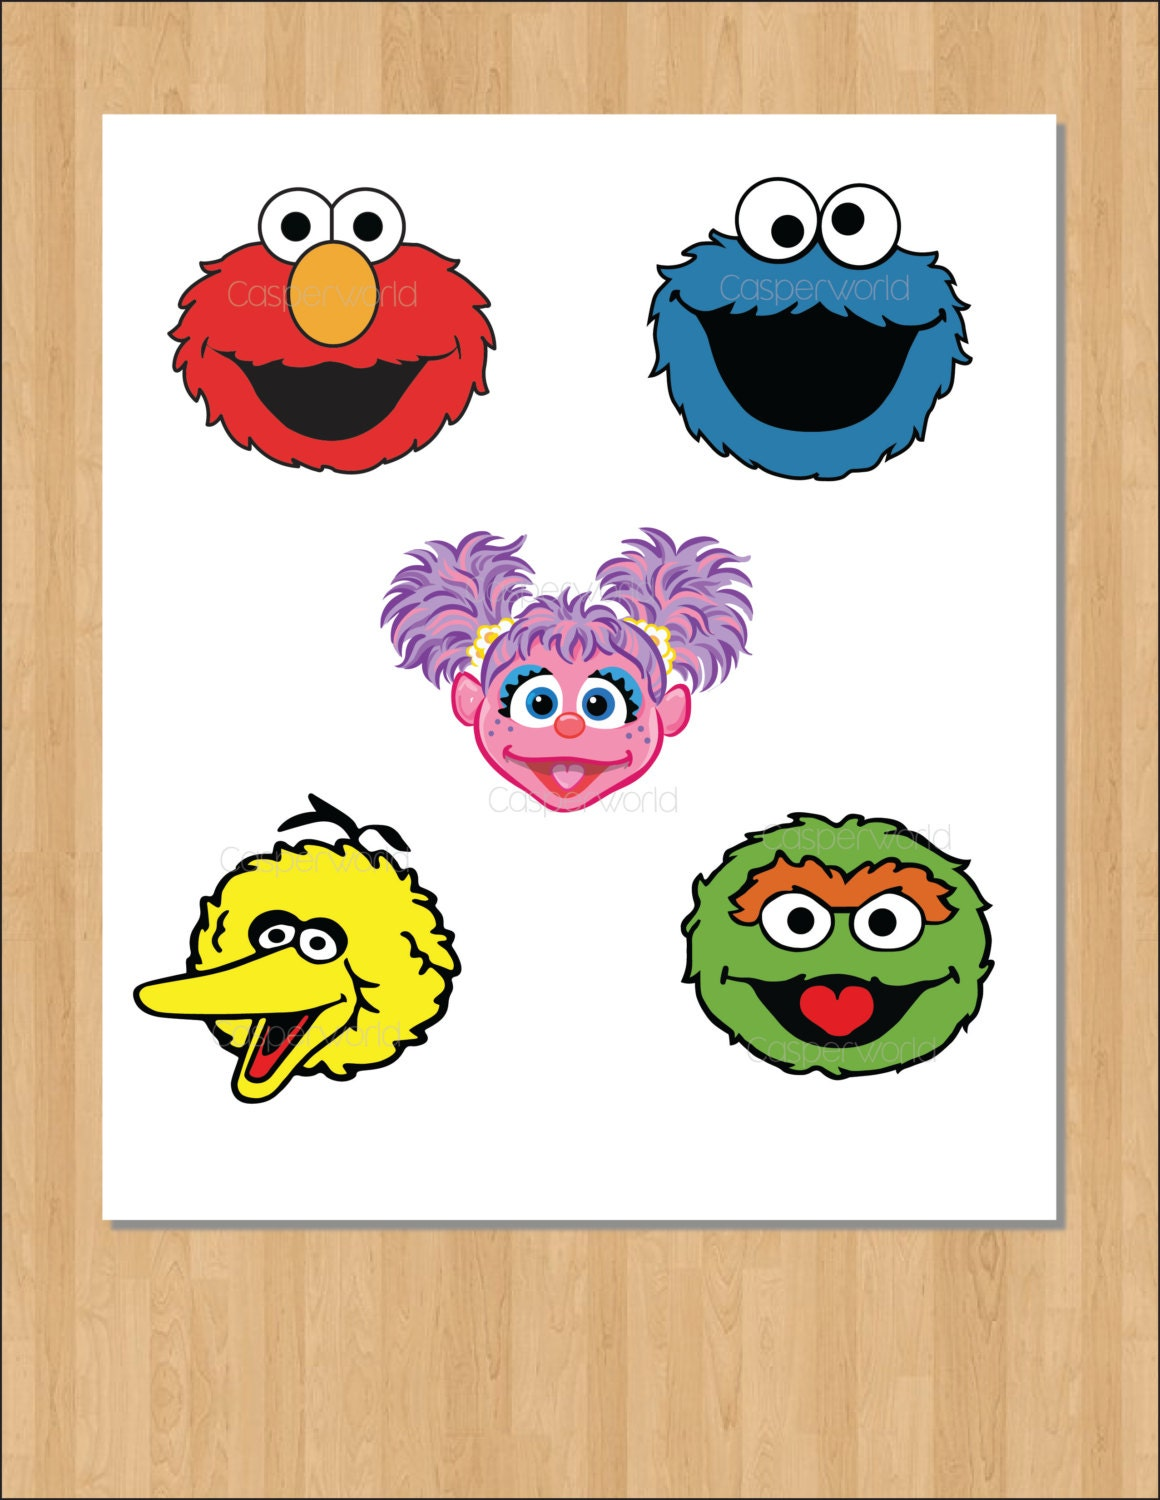 Sesame street birthday party characters elmo cookie monster